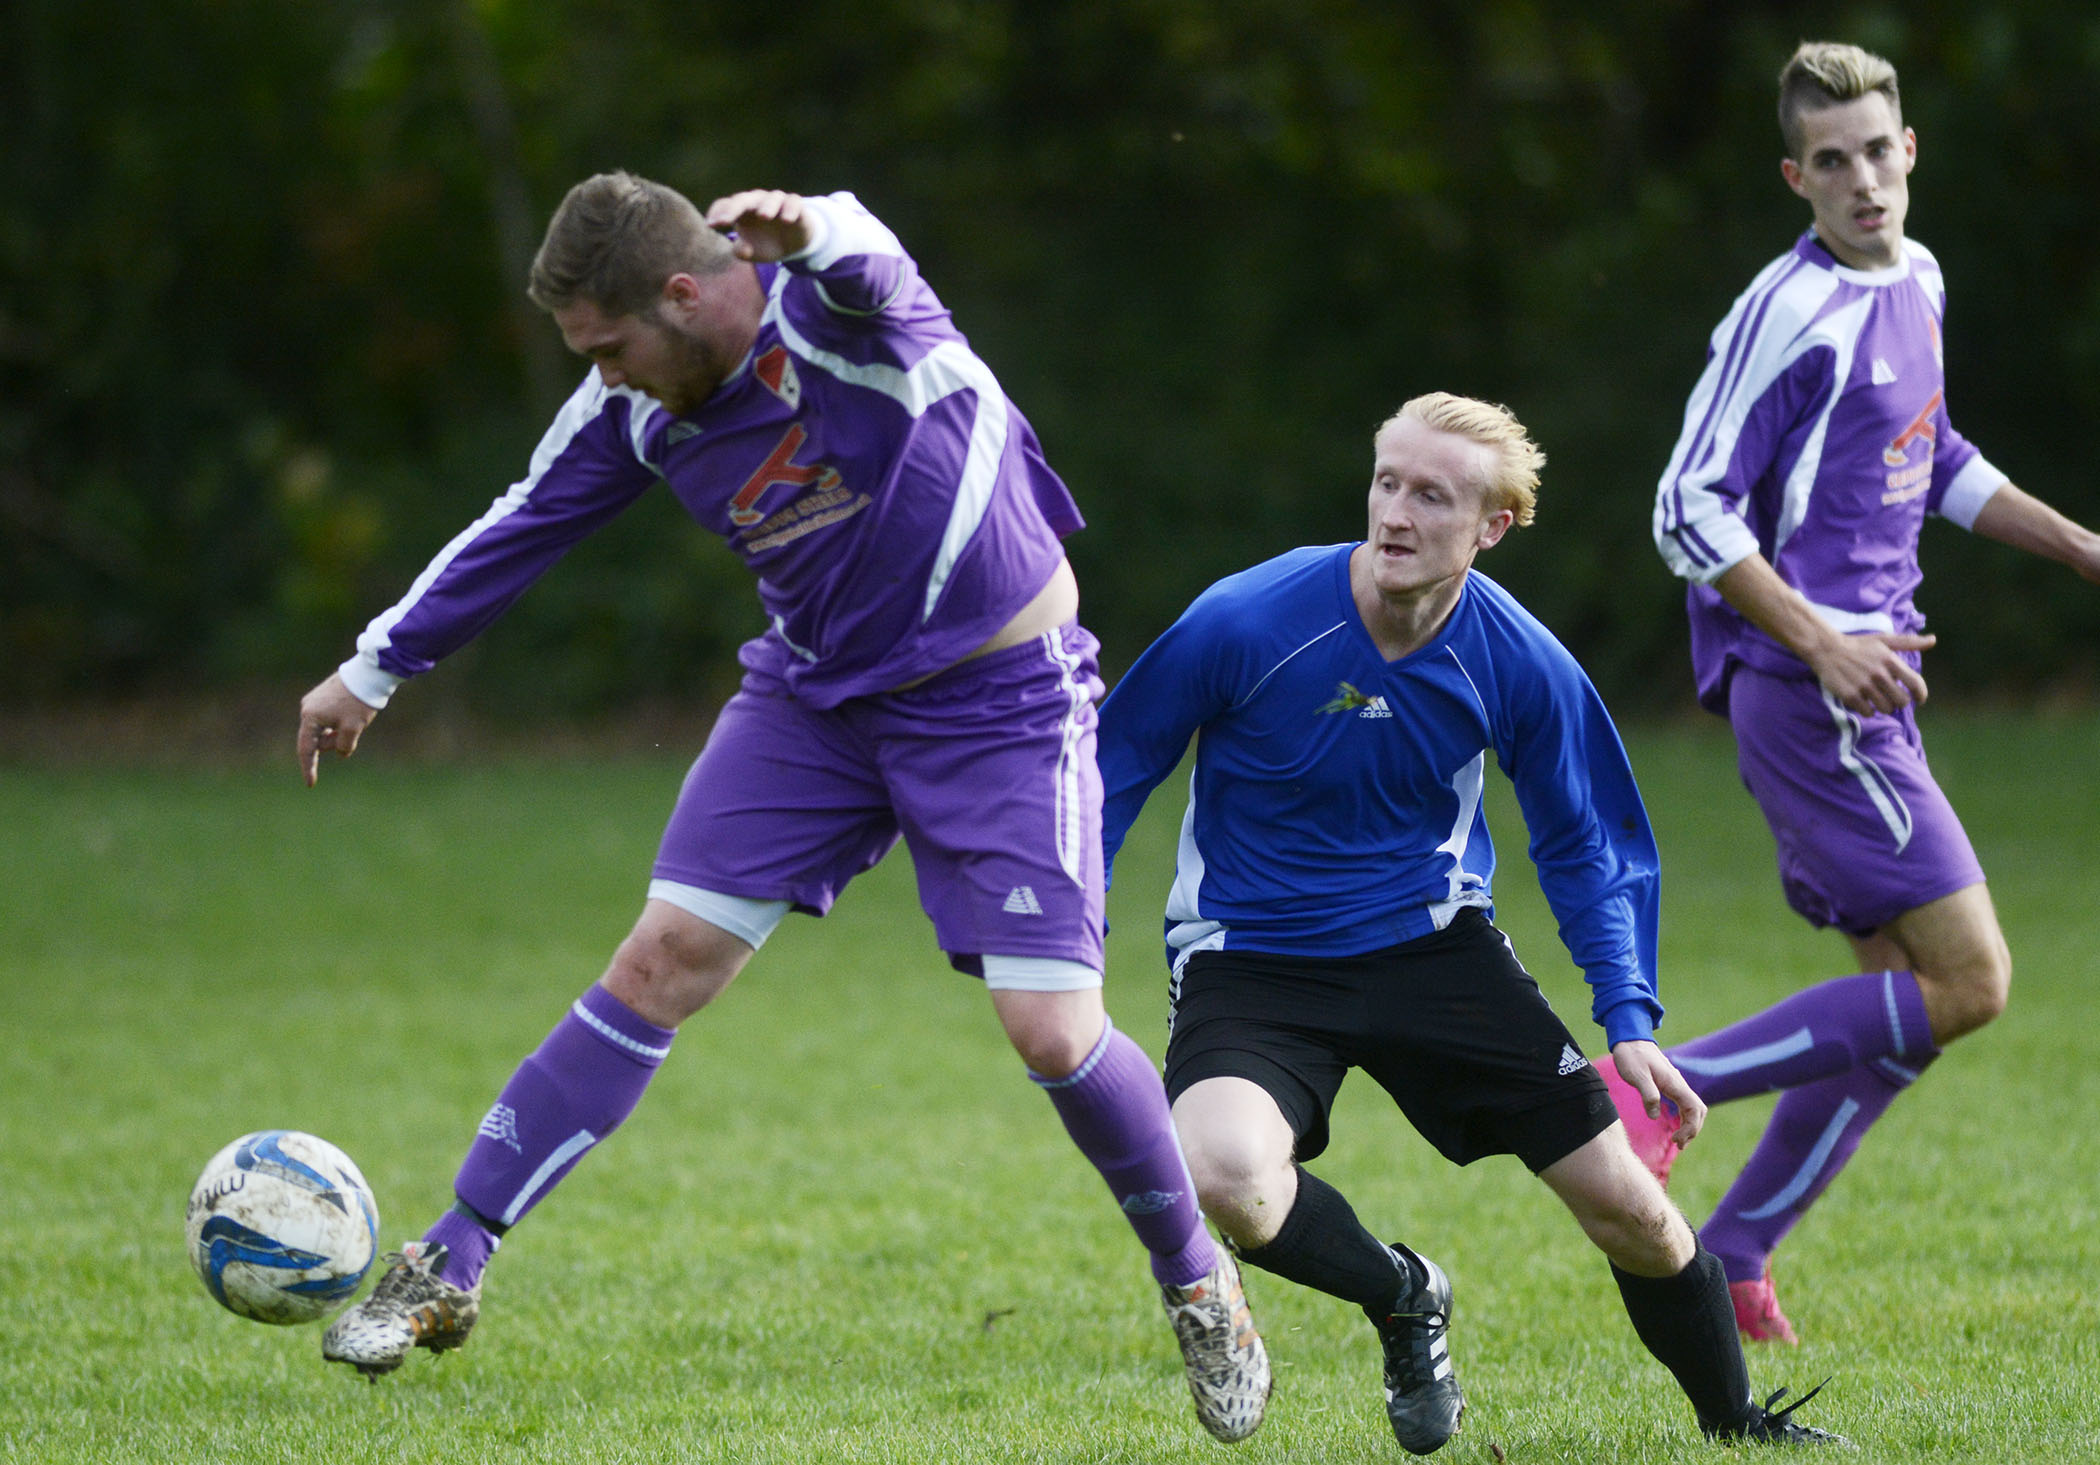 Wraysbury Village (purple) suffered a 4-1 defeat on penalties to Bracknell Royals in the Berks & Bucks Junior Trophy on Sunday.